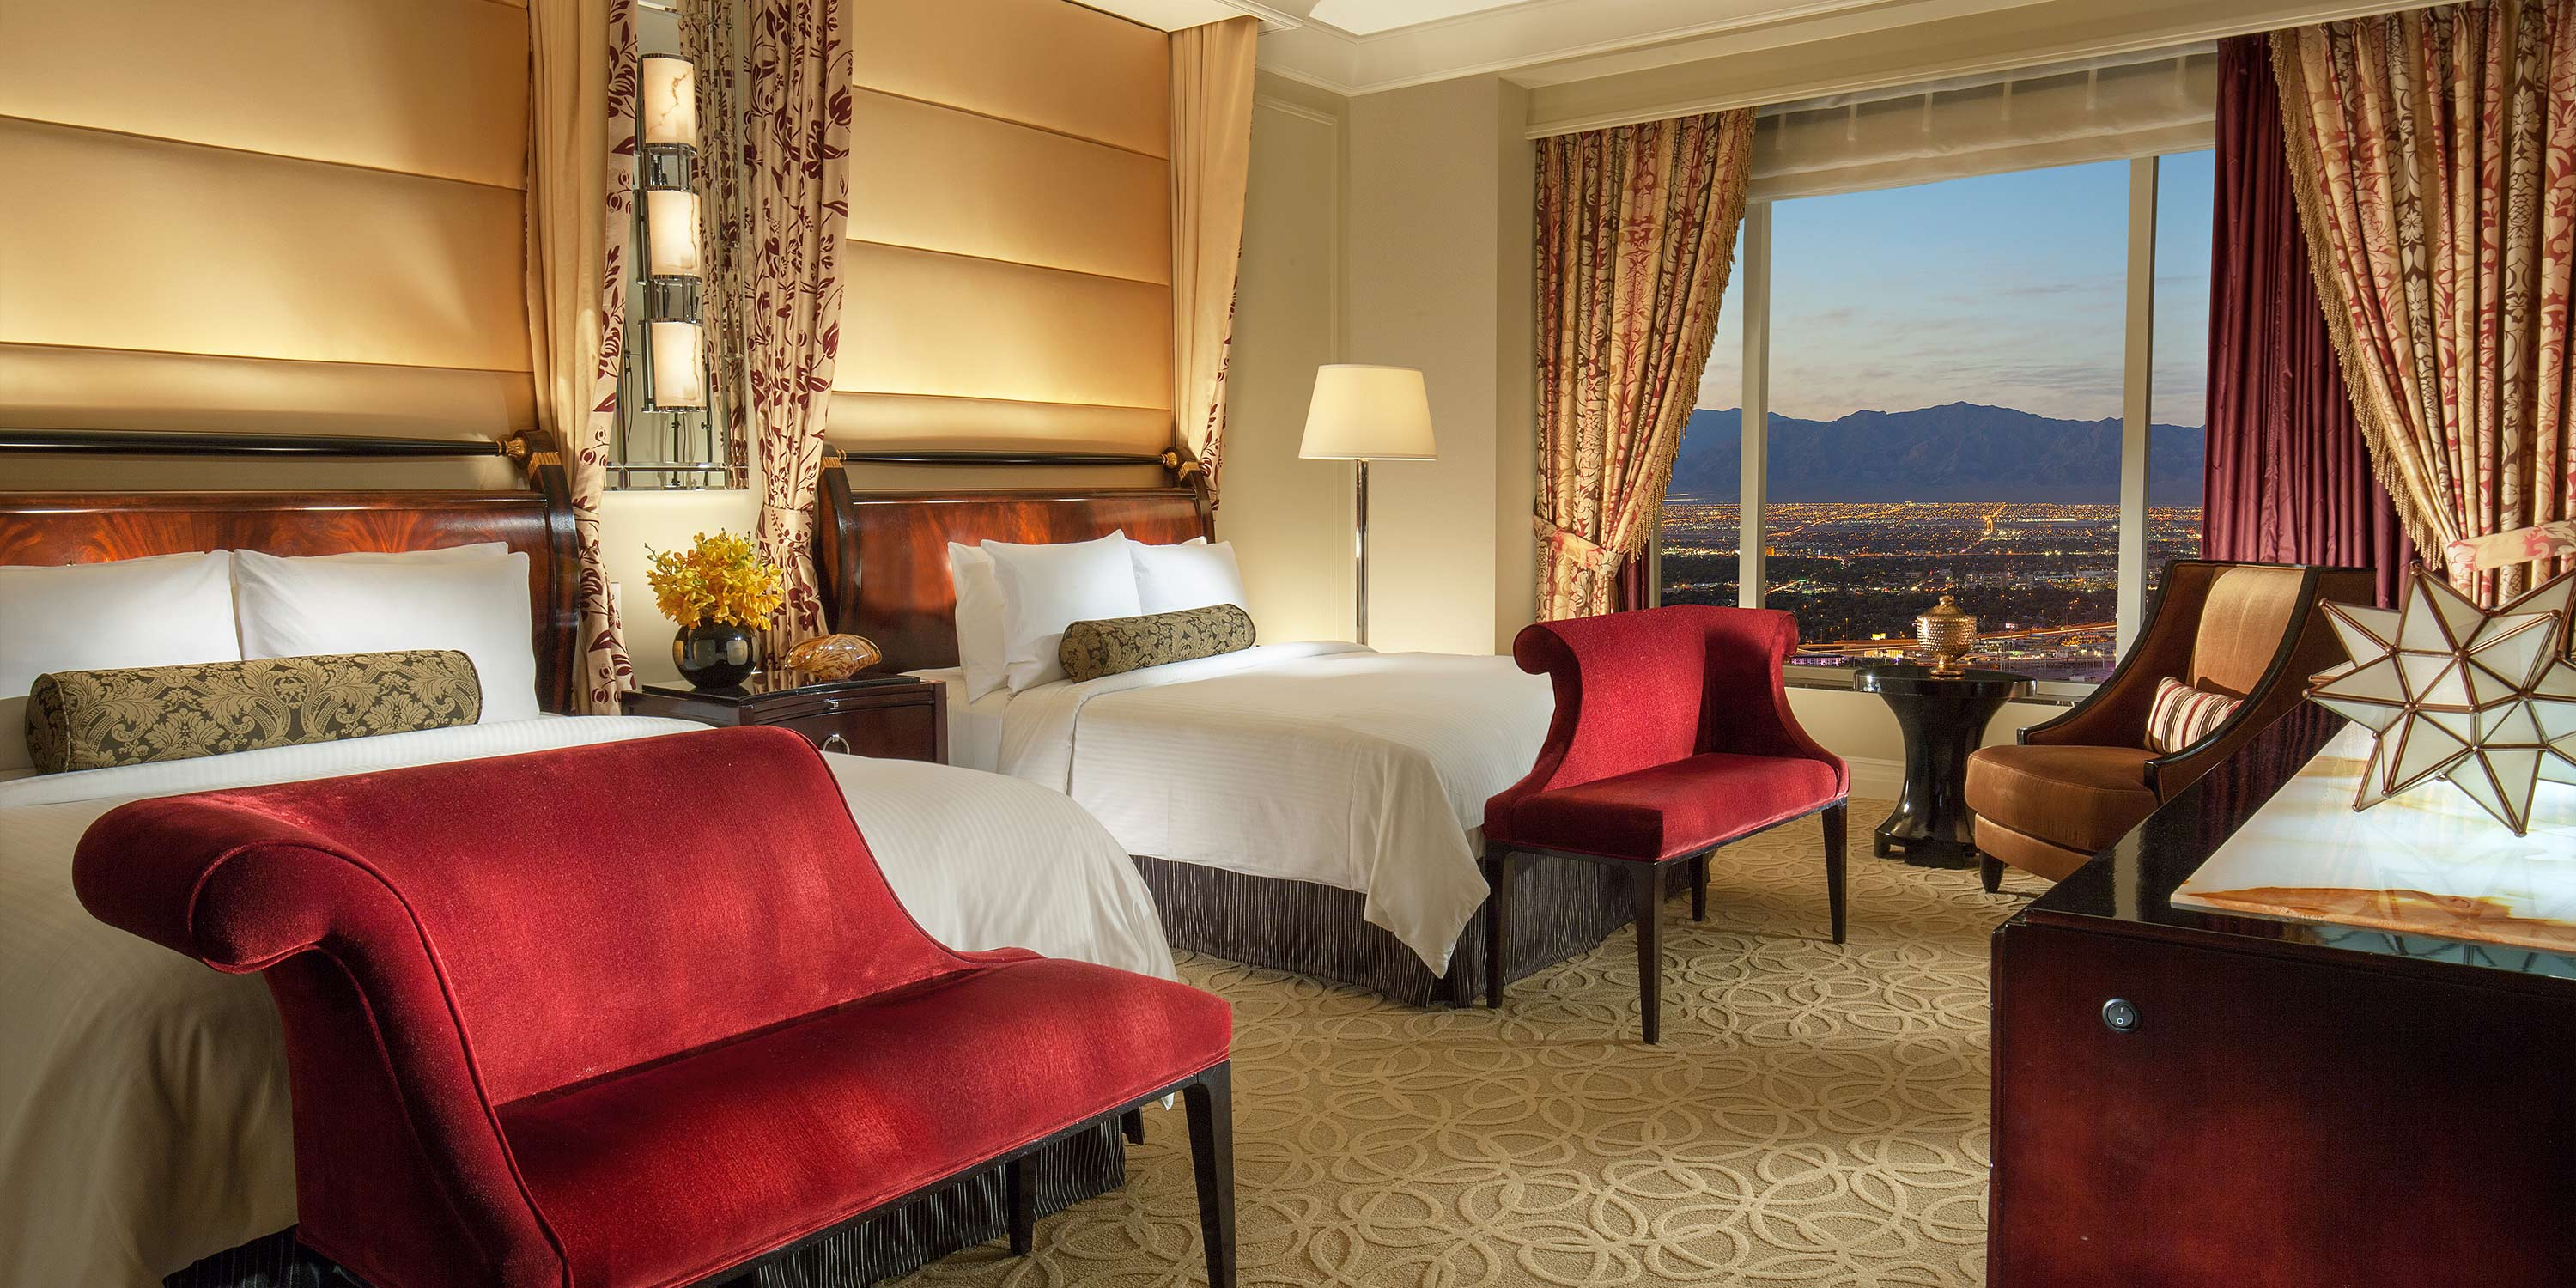 The Palazzo® Las Vegas offers spacious suites with a separate living area and a dining table. In-room media includes 2 LCD HD TVs, a DVD player and high-speed Internet access. In-room media includes 2 LCD HD TVs, a DVD player and high-speed Internet access.9/10(K).